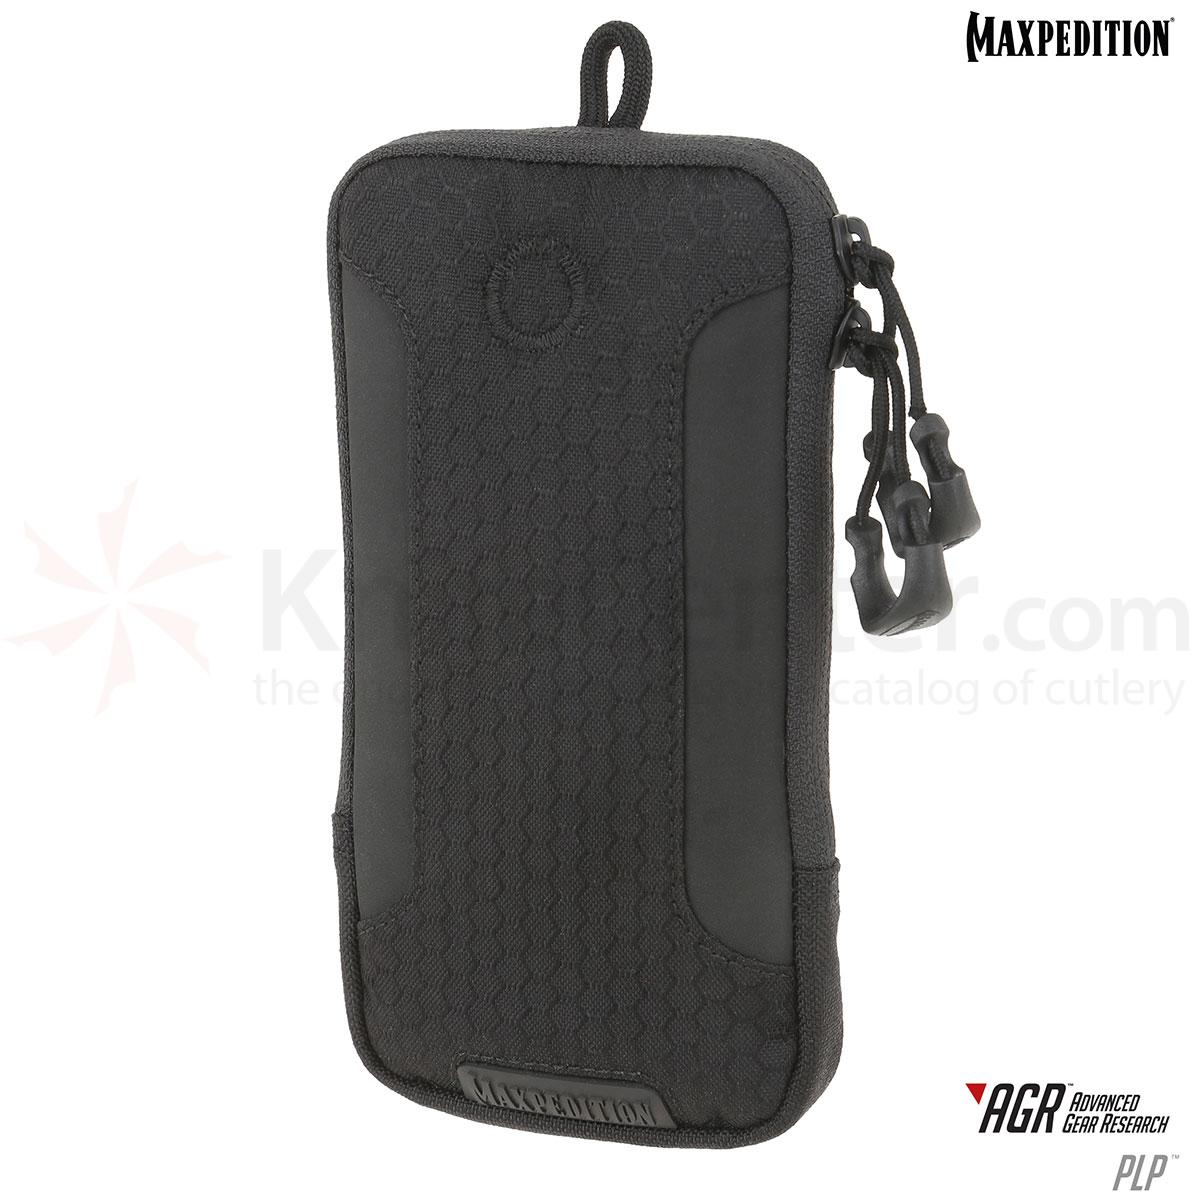 Maxpedition PLPBLK AGR PLP iPhone 6s Plus Pouch, Black